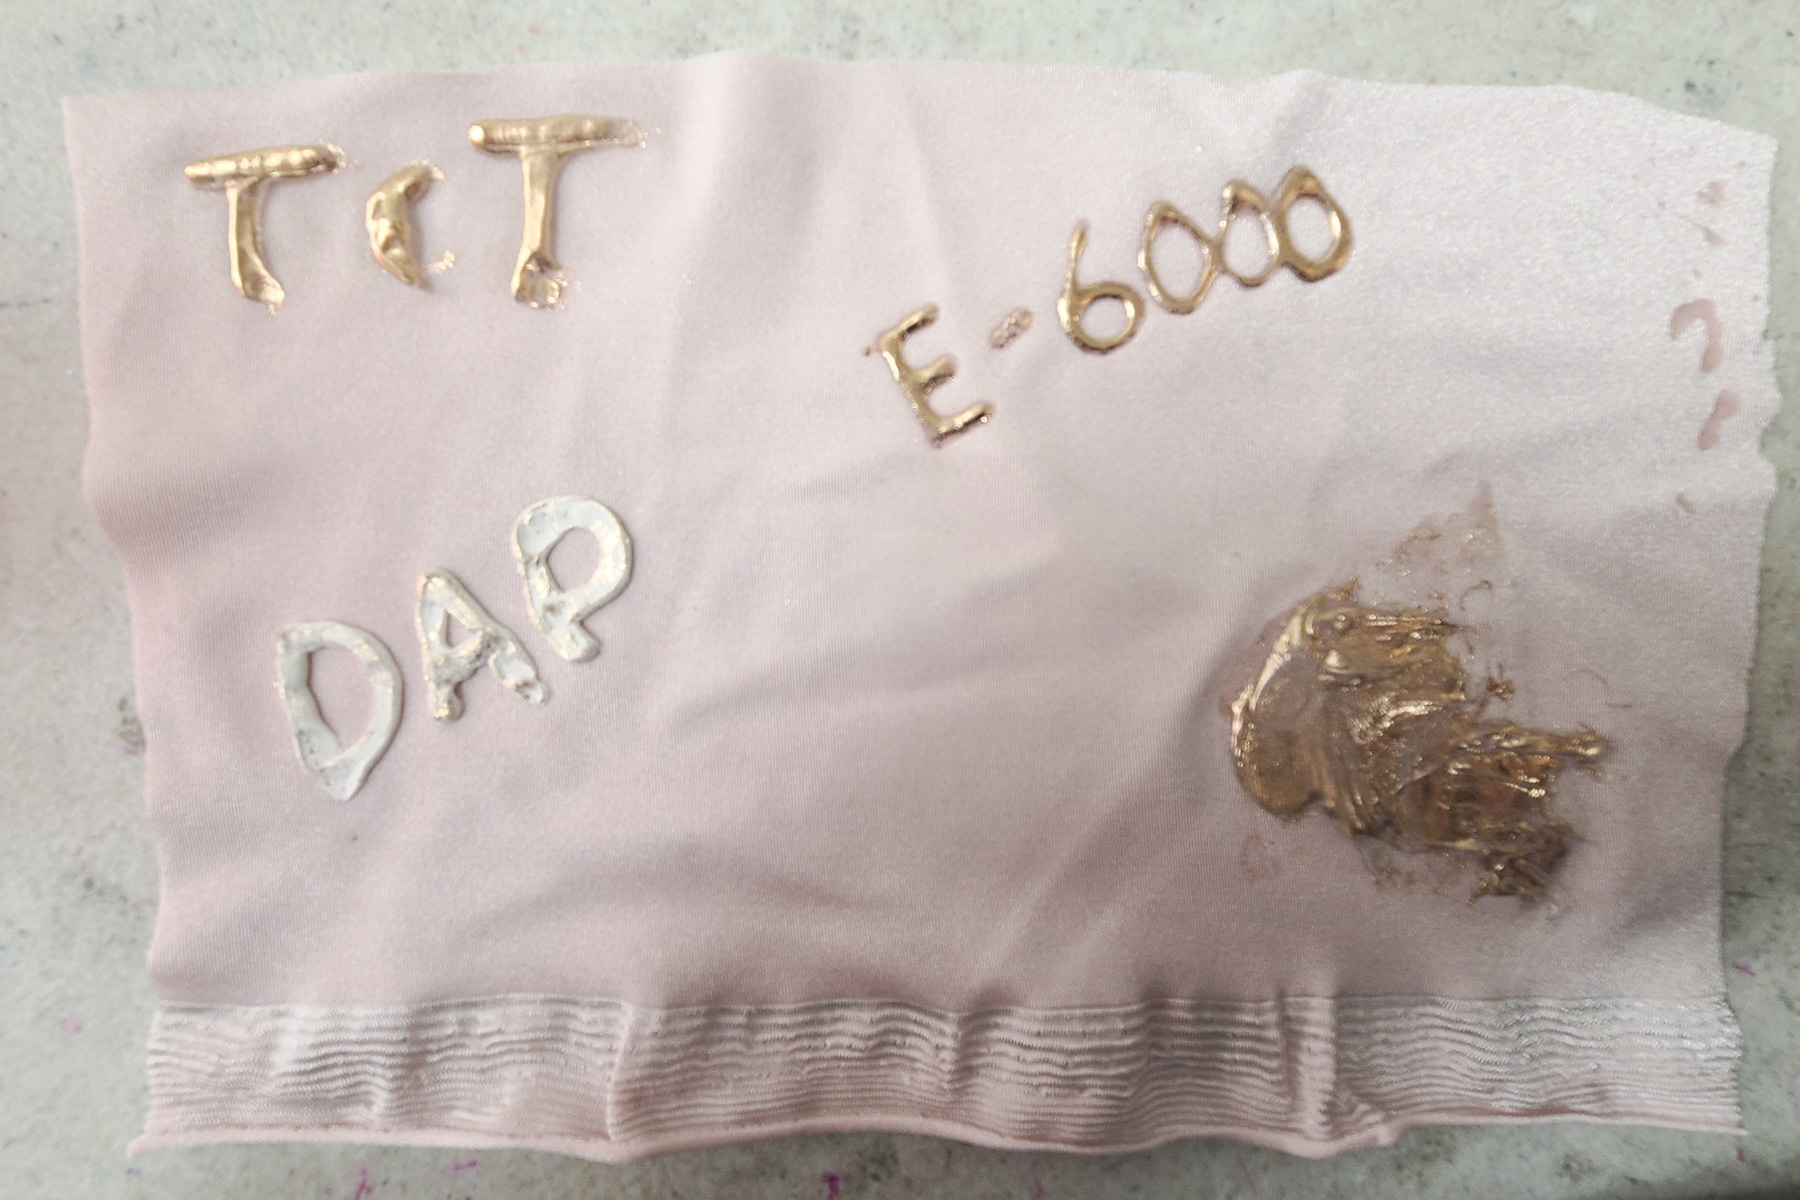 A piece of light pink spandex with sections of foil covered writing on it.